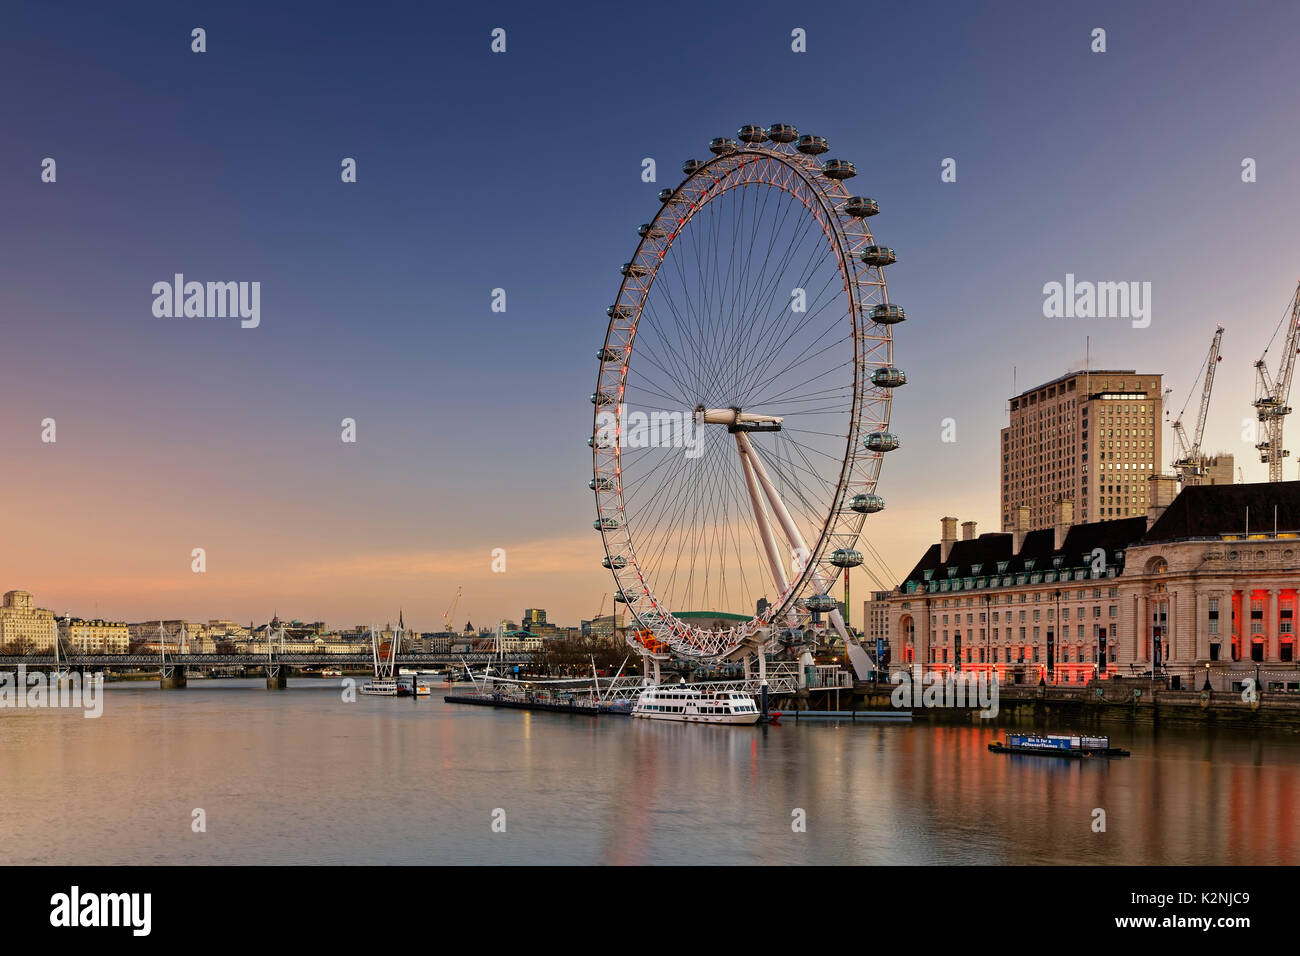 London Eye, ruota panoramica sul fiume Thames, London, England, Regno Unito Foto Stock